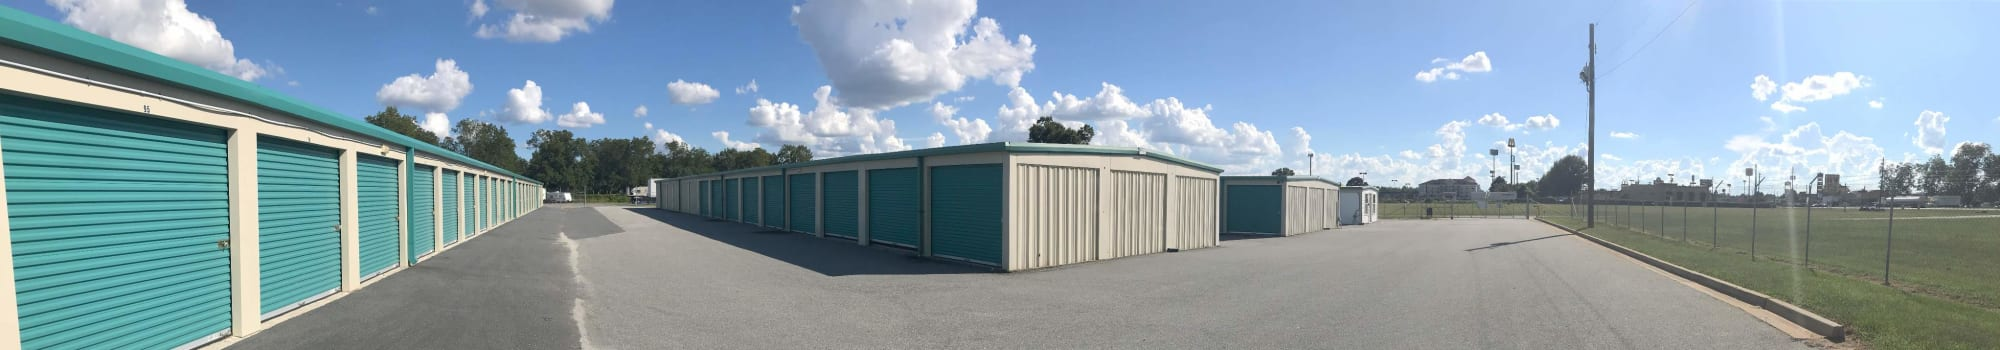 Contact us today at Byron Self Storage in Byron